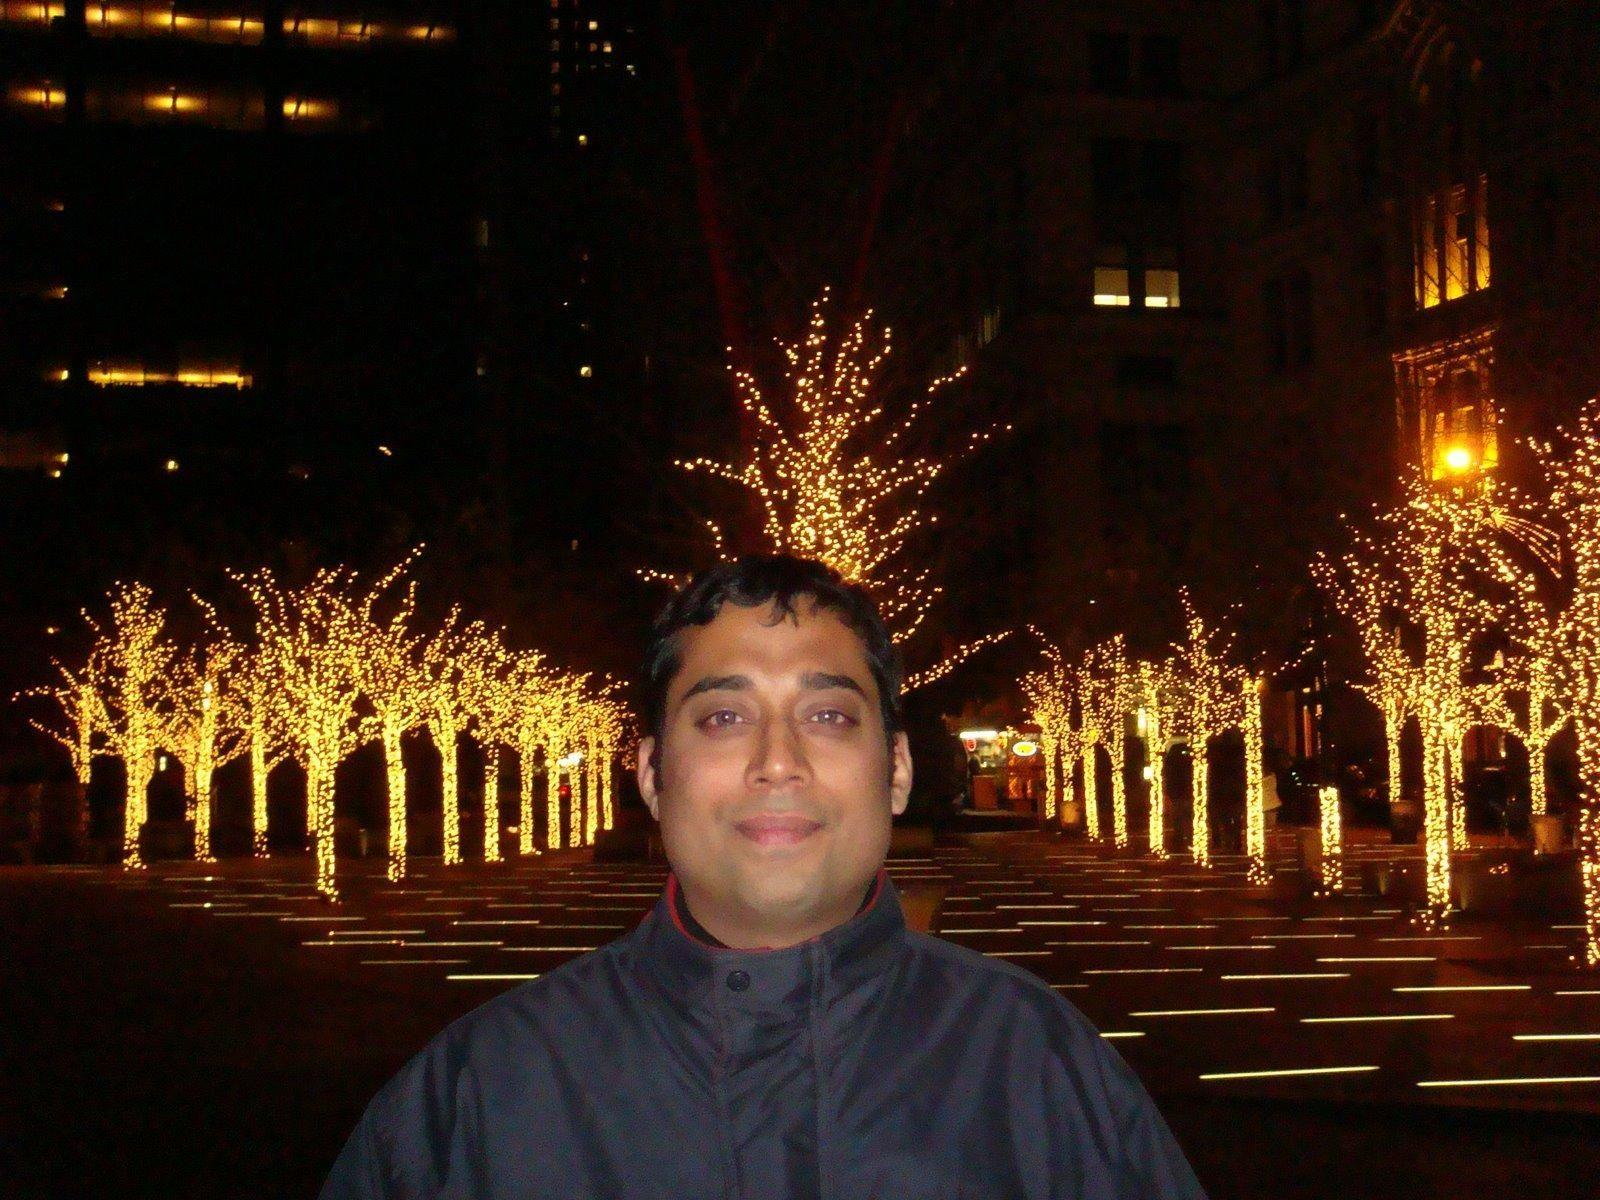 new york indian singles meetup Mysteries, games & cocktails for nyc singles 67 km carlow east in 3h quibusdam44429 tue 14:32 automation one meetup hq 632 broadway , 10012 new york, ny.